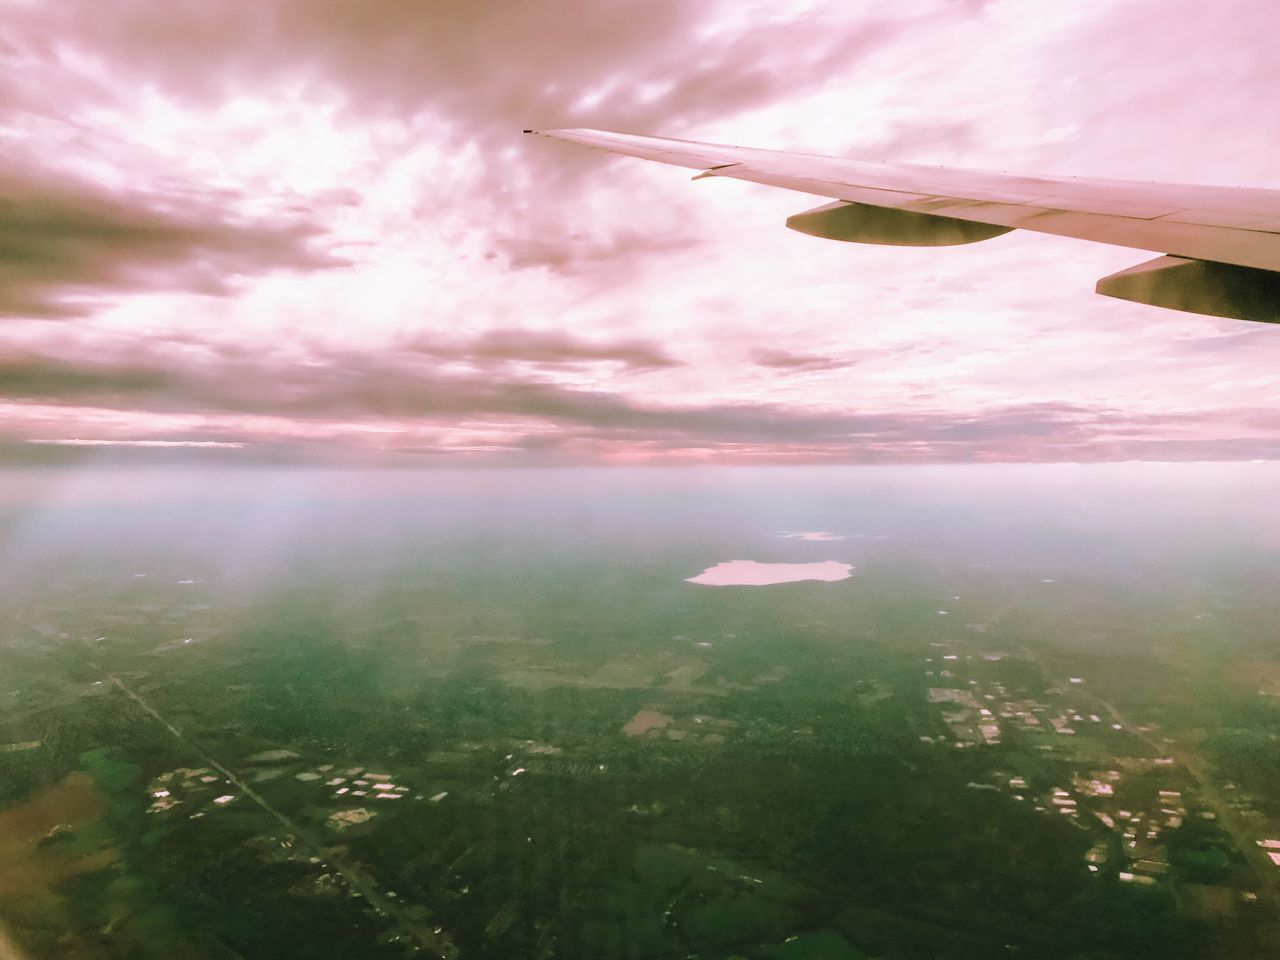 Airplane Sky Journey Transportation Flying Air Vehicle Landscape Airplane Wing Scenics Cloud - Sky Travel No People Nature Beauty In Nature Outdoors Tranquil Scene Day Sea Tranquility Mid-air